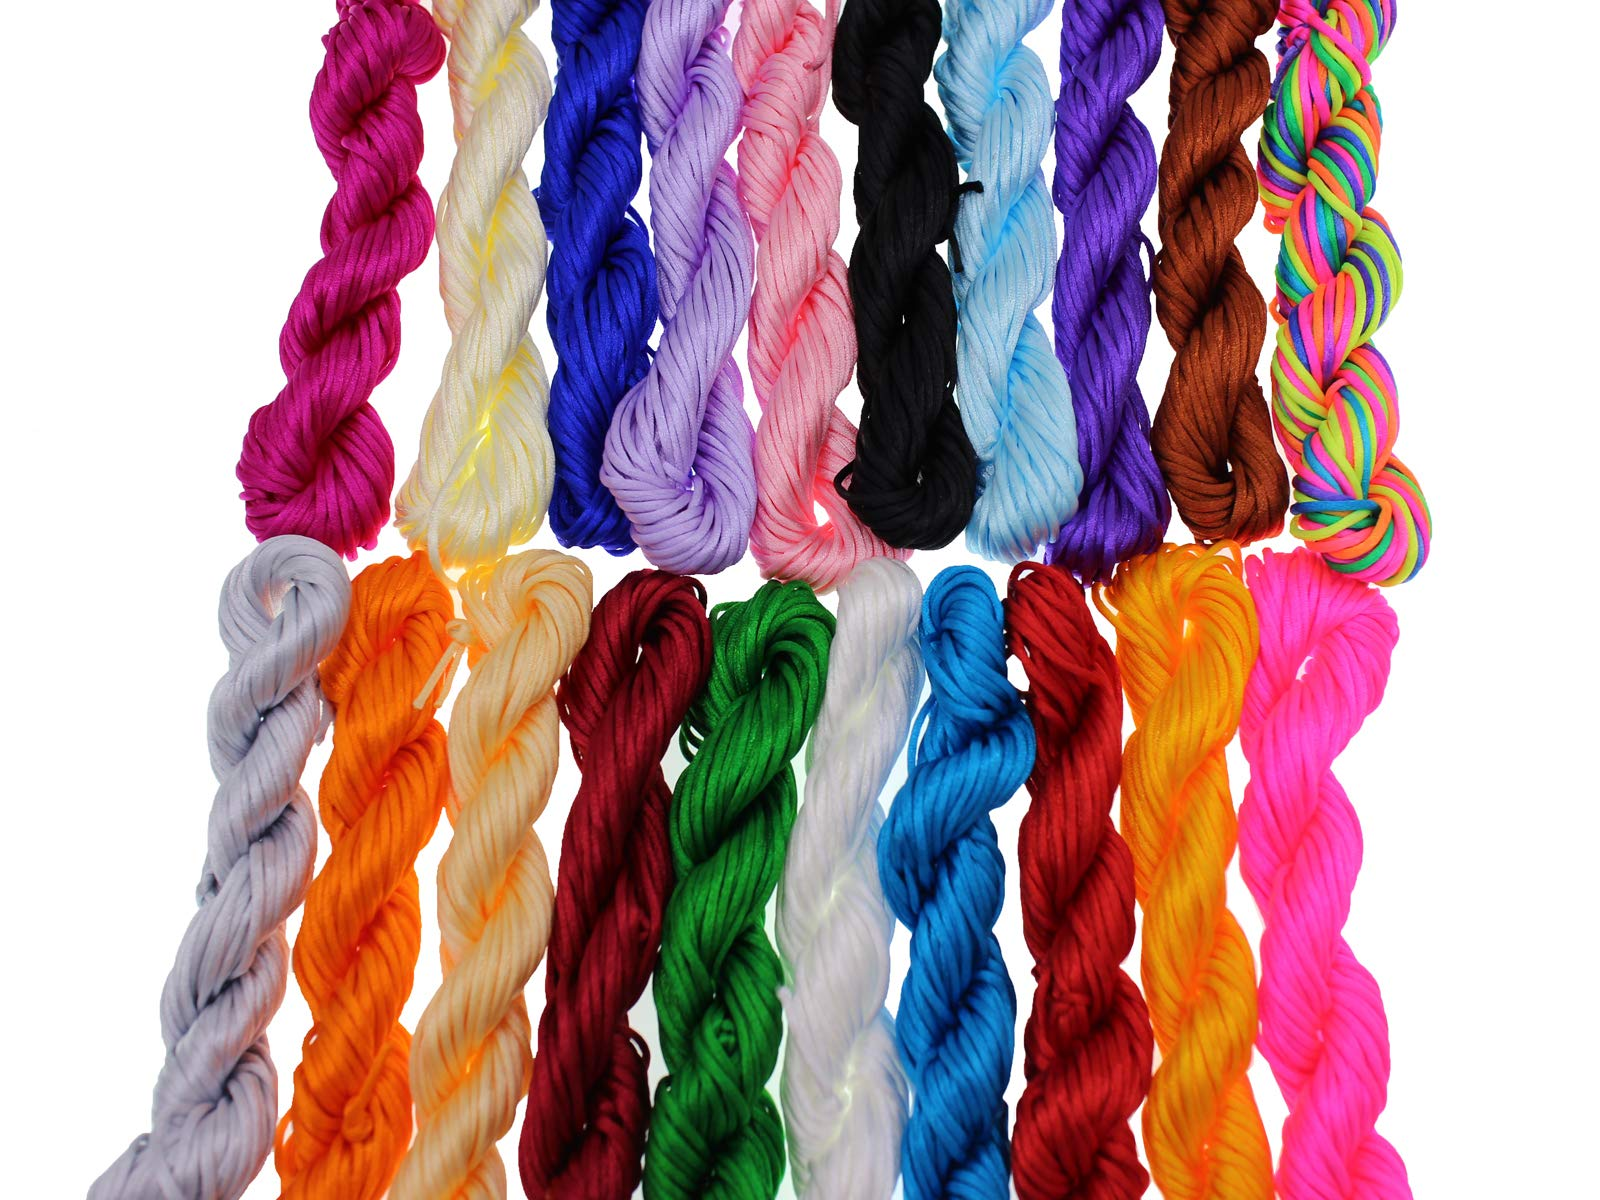 Pamir Tong Full-Colors 20bundles 300 Yards 1.5mm Satin/Rattail Silk Cord for Necklace Bracelet Beading Cord (Type 01) by Pamir Tong